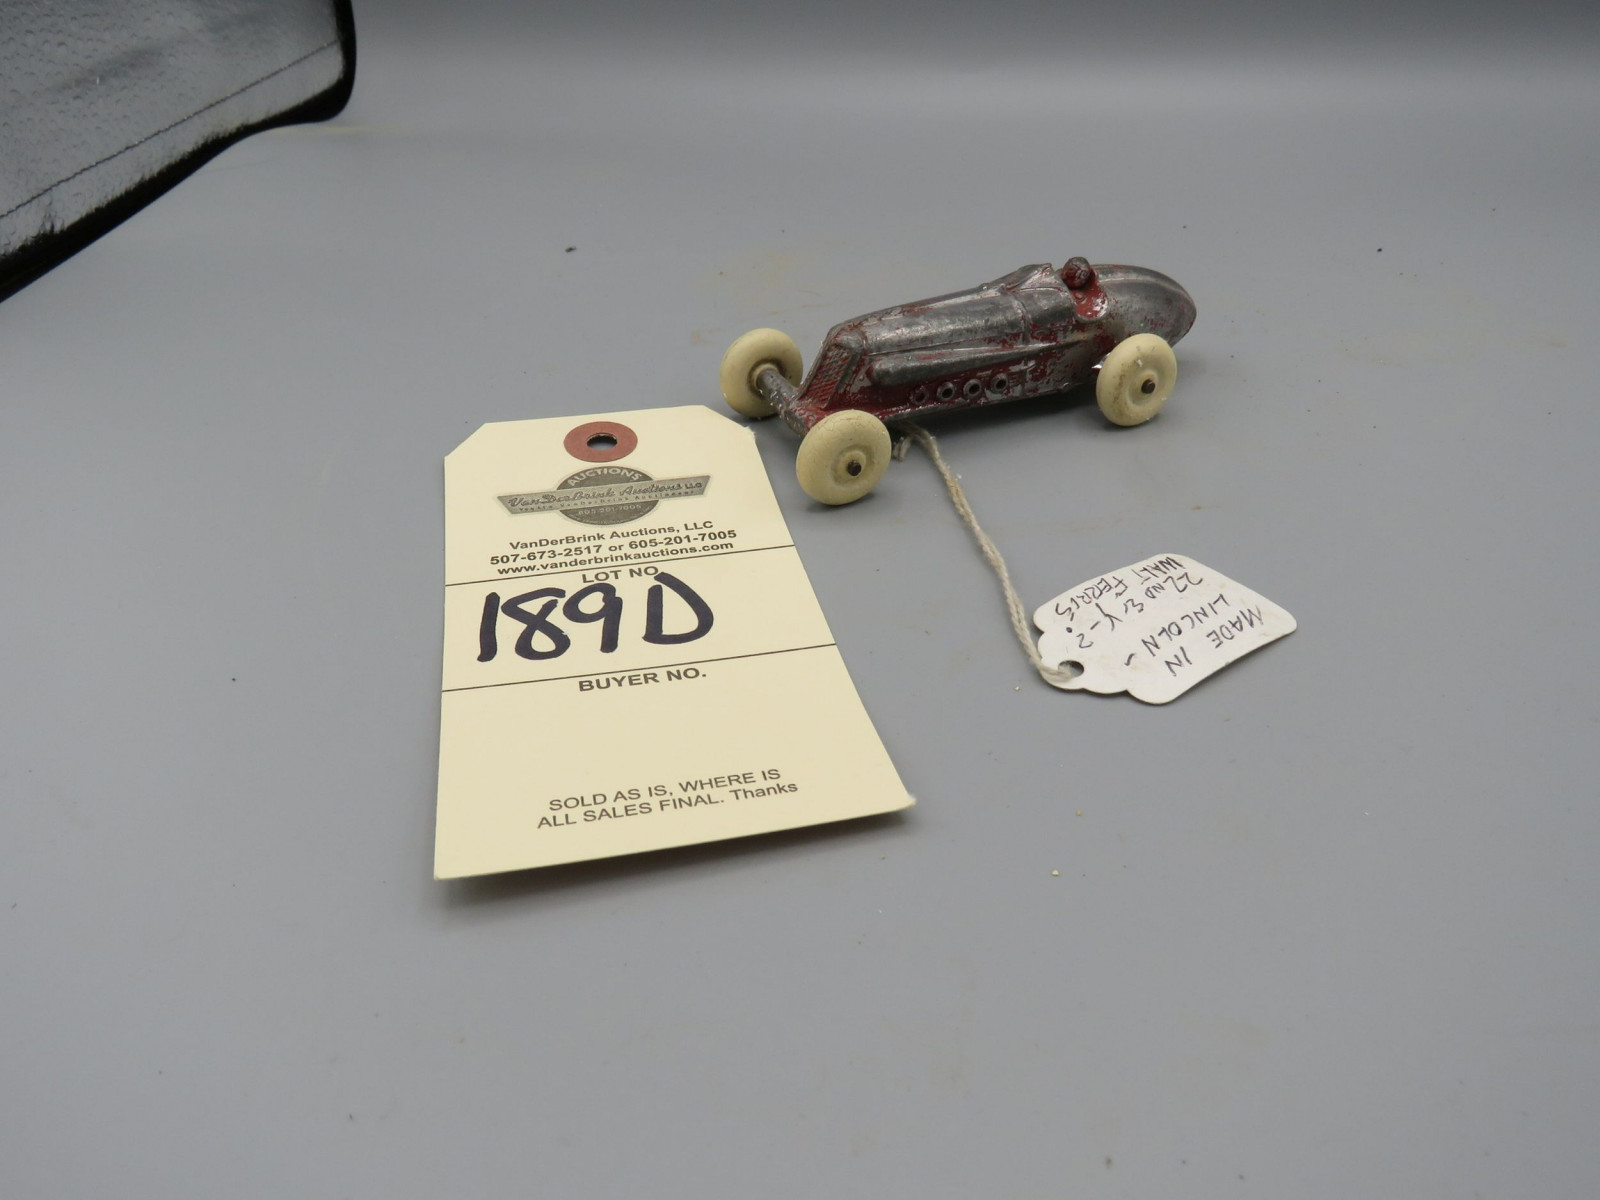 Rare Slush Cast Racer from Walt Ferris made in Lincoln,  Ne #LWV28  Approx. 2 inches - Image 1